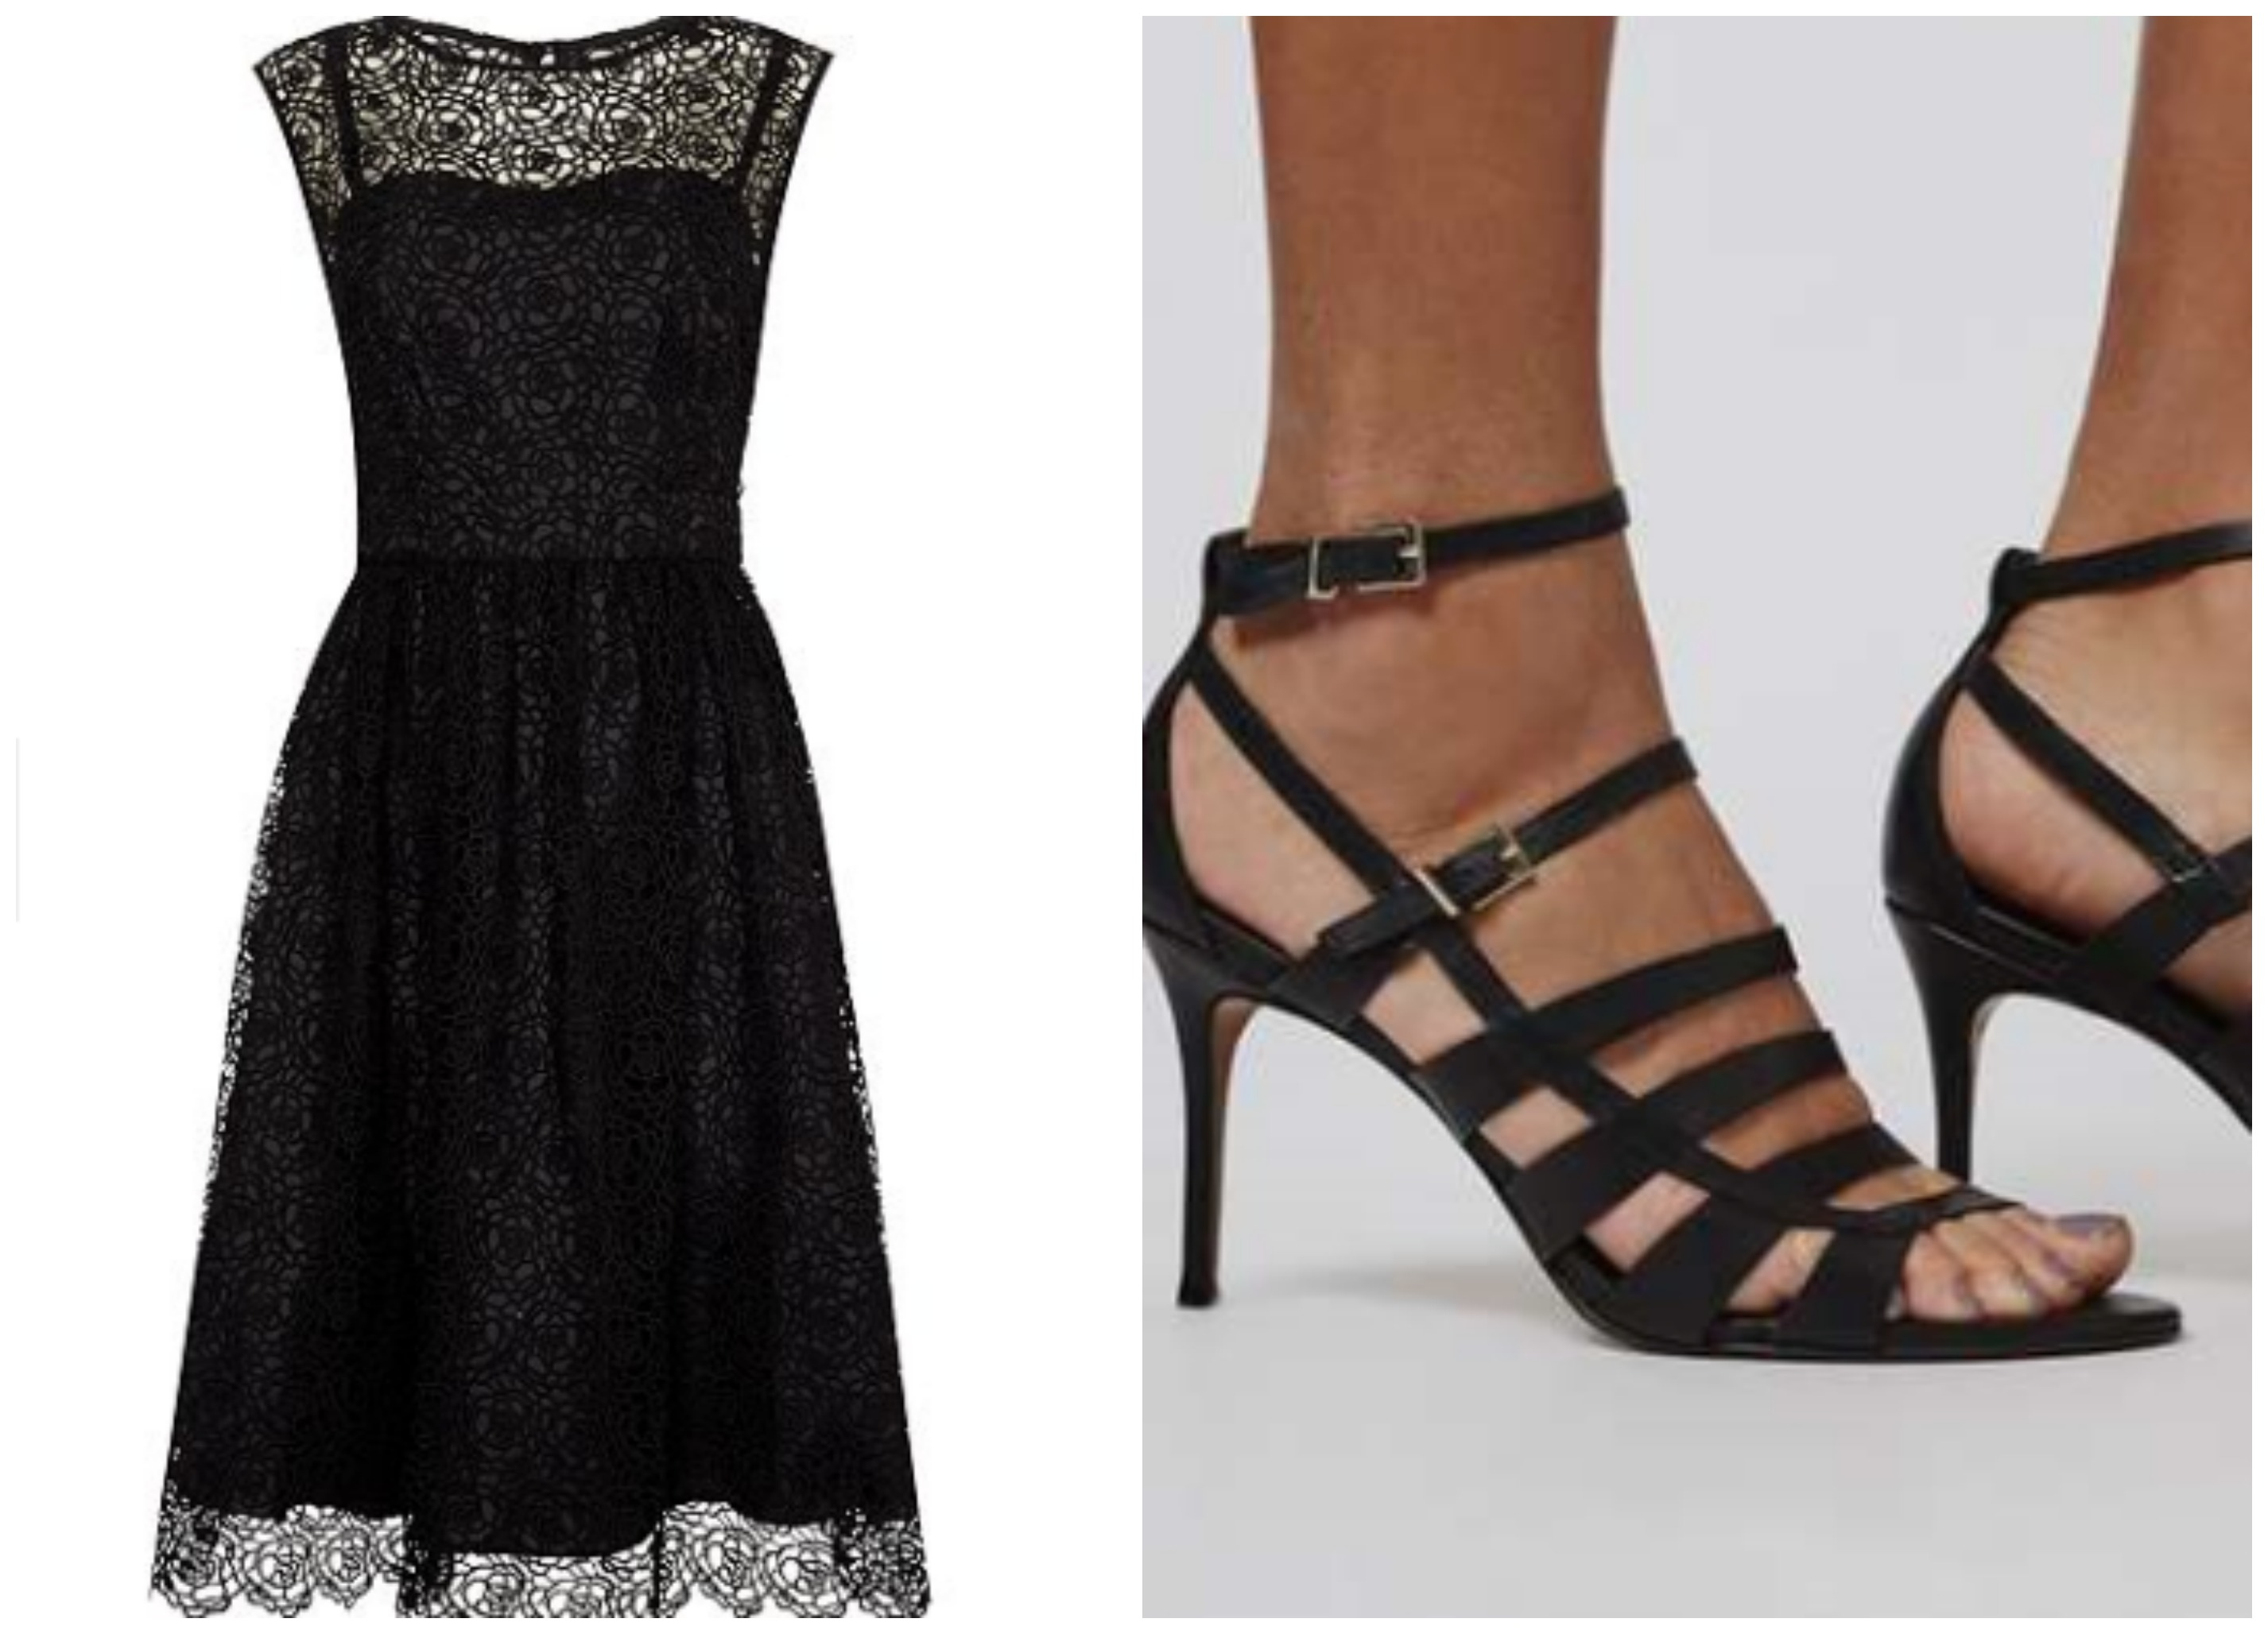 House of fraser cocktail dress with topshop heels suitable for a charity ball